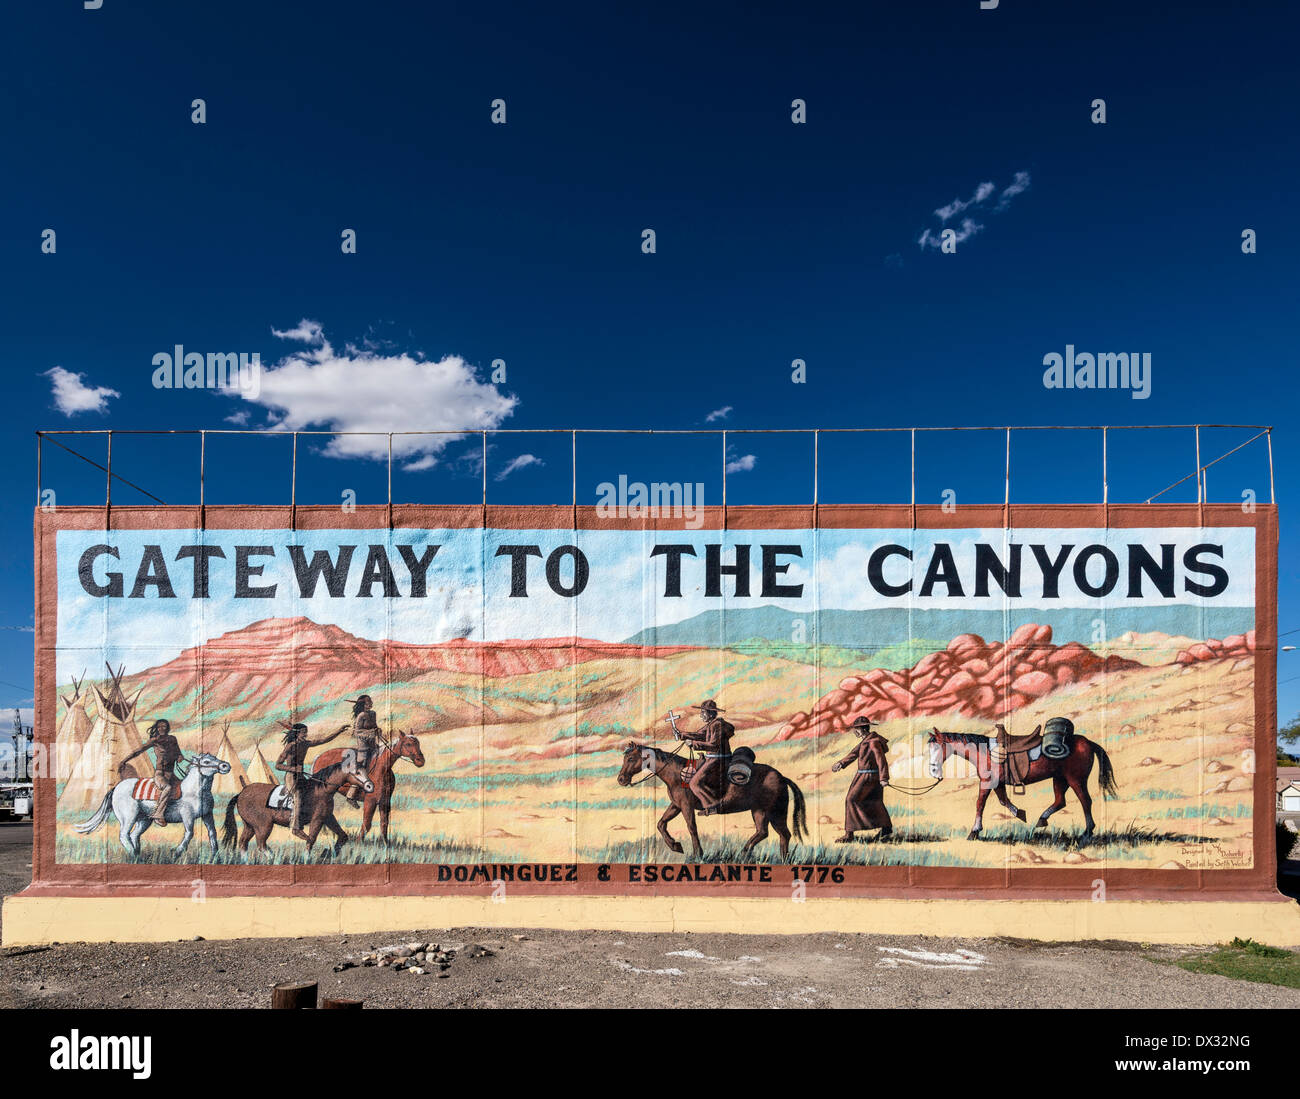 Gateway to the Canyons, mural commemorating Dominguez-Escalante Expedition of 1776, in Delta, Colorado, USA Stock Photo